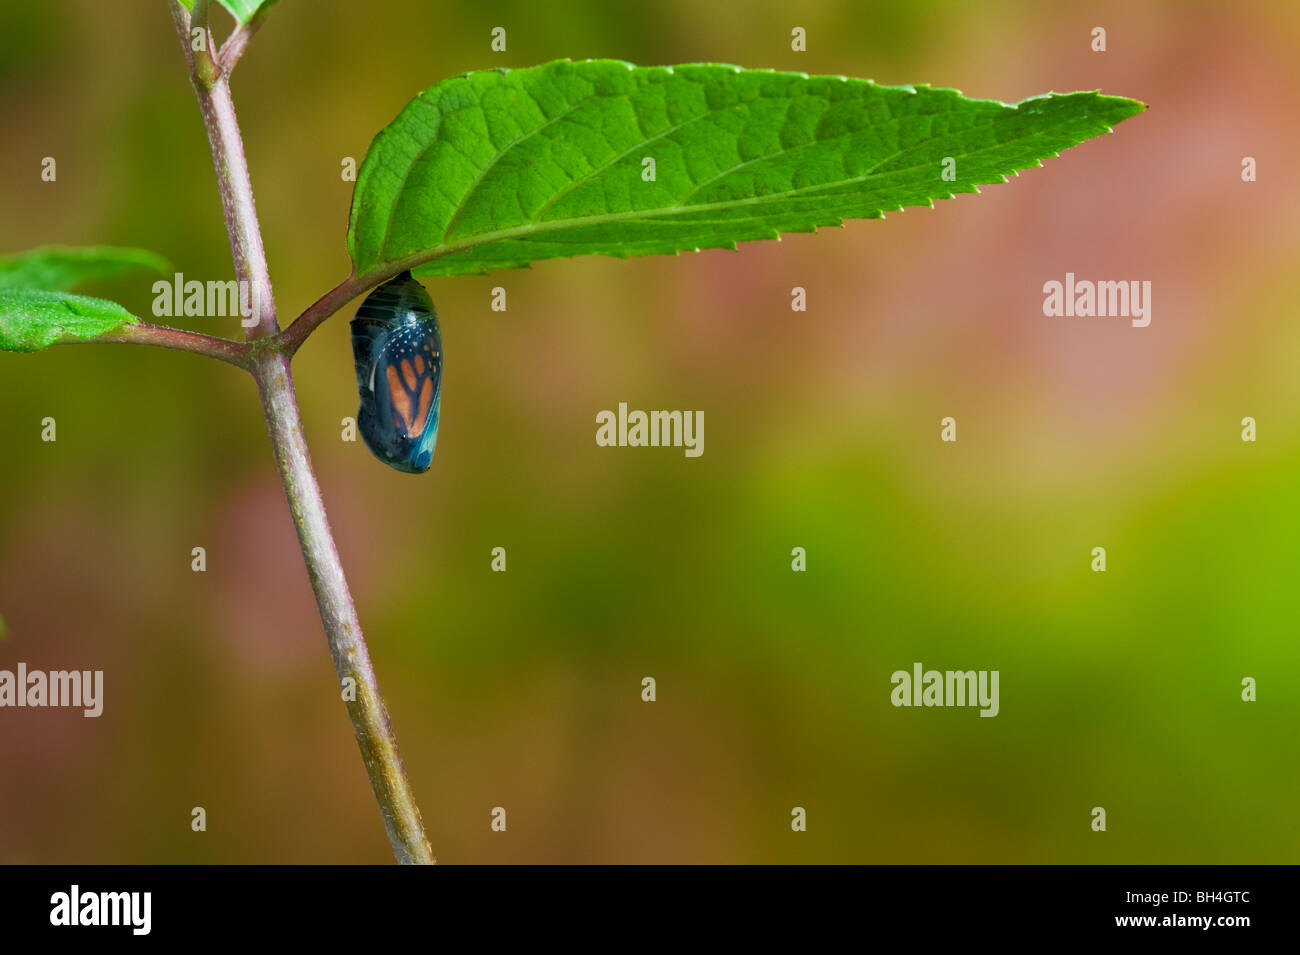 Monarch butterfly chrysalis, transparent, end of pupal stage, adult butterfly emerging, Nova Scotia. Series of 4 - Stock Image